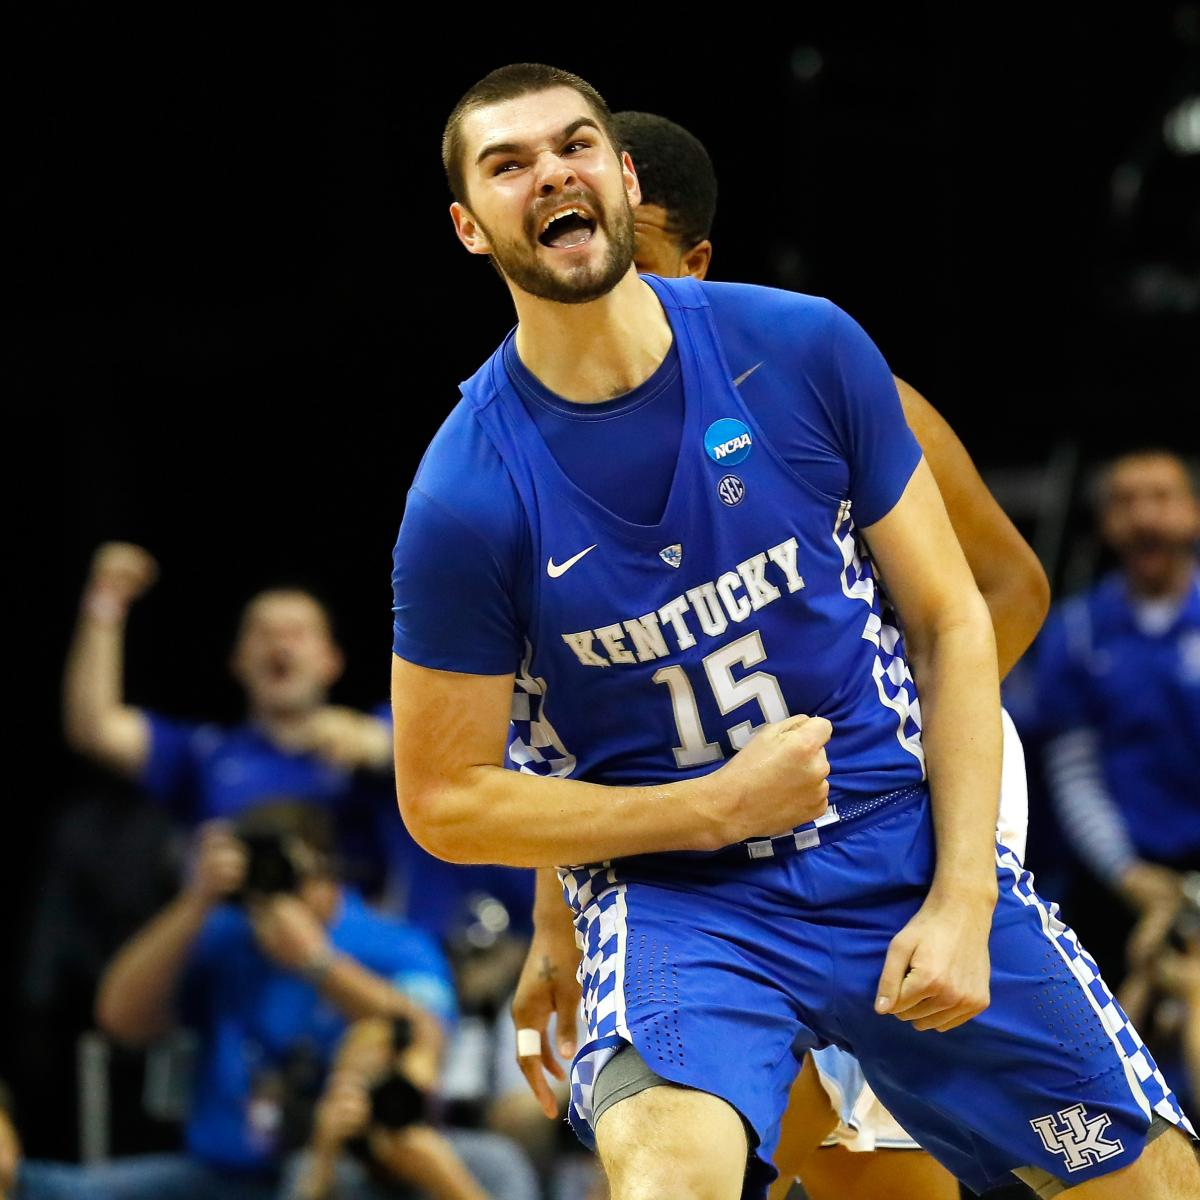 T Of C Alums 2017 Nba Draft: Isaac Humphries Declares For 2017 NBA Draft After